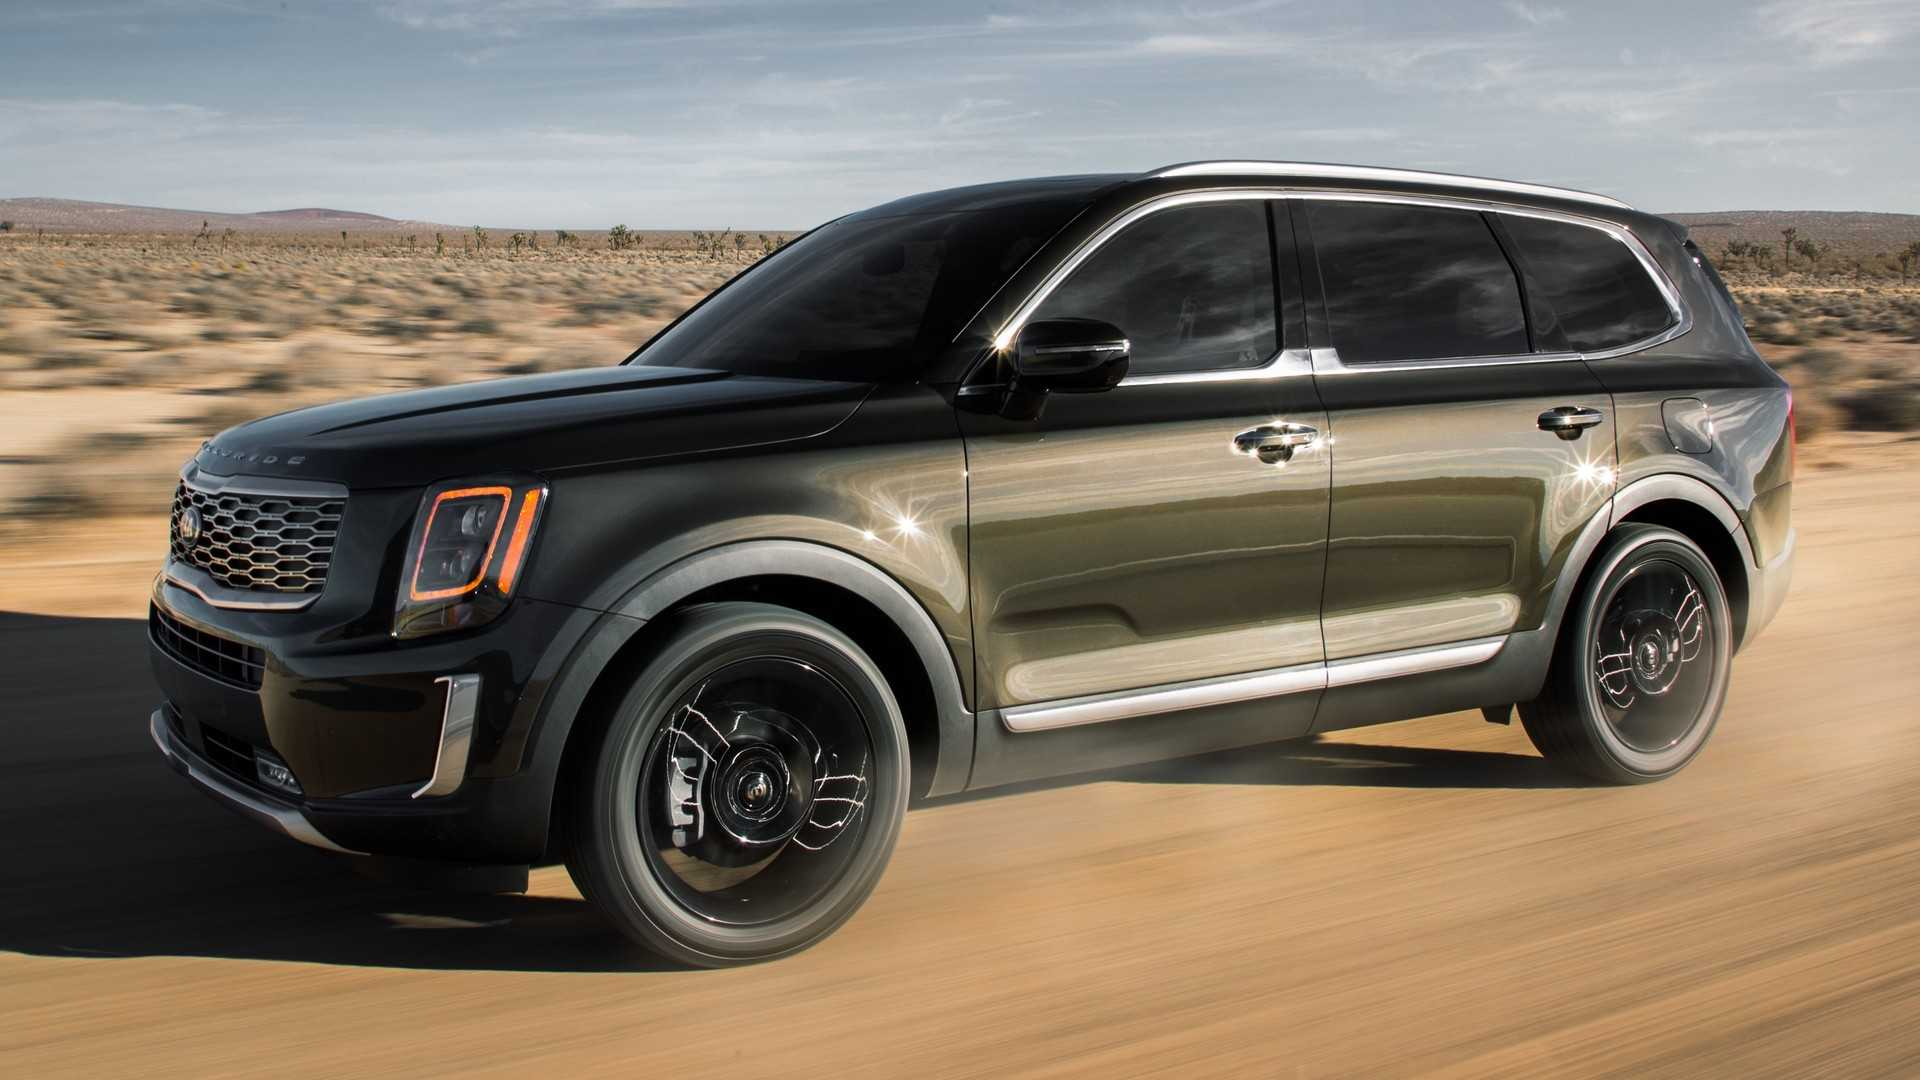 32 Great Kia Telluride 2020 Colors Specs by Kia Telluride 2020 Colors